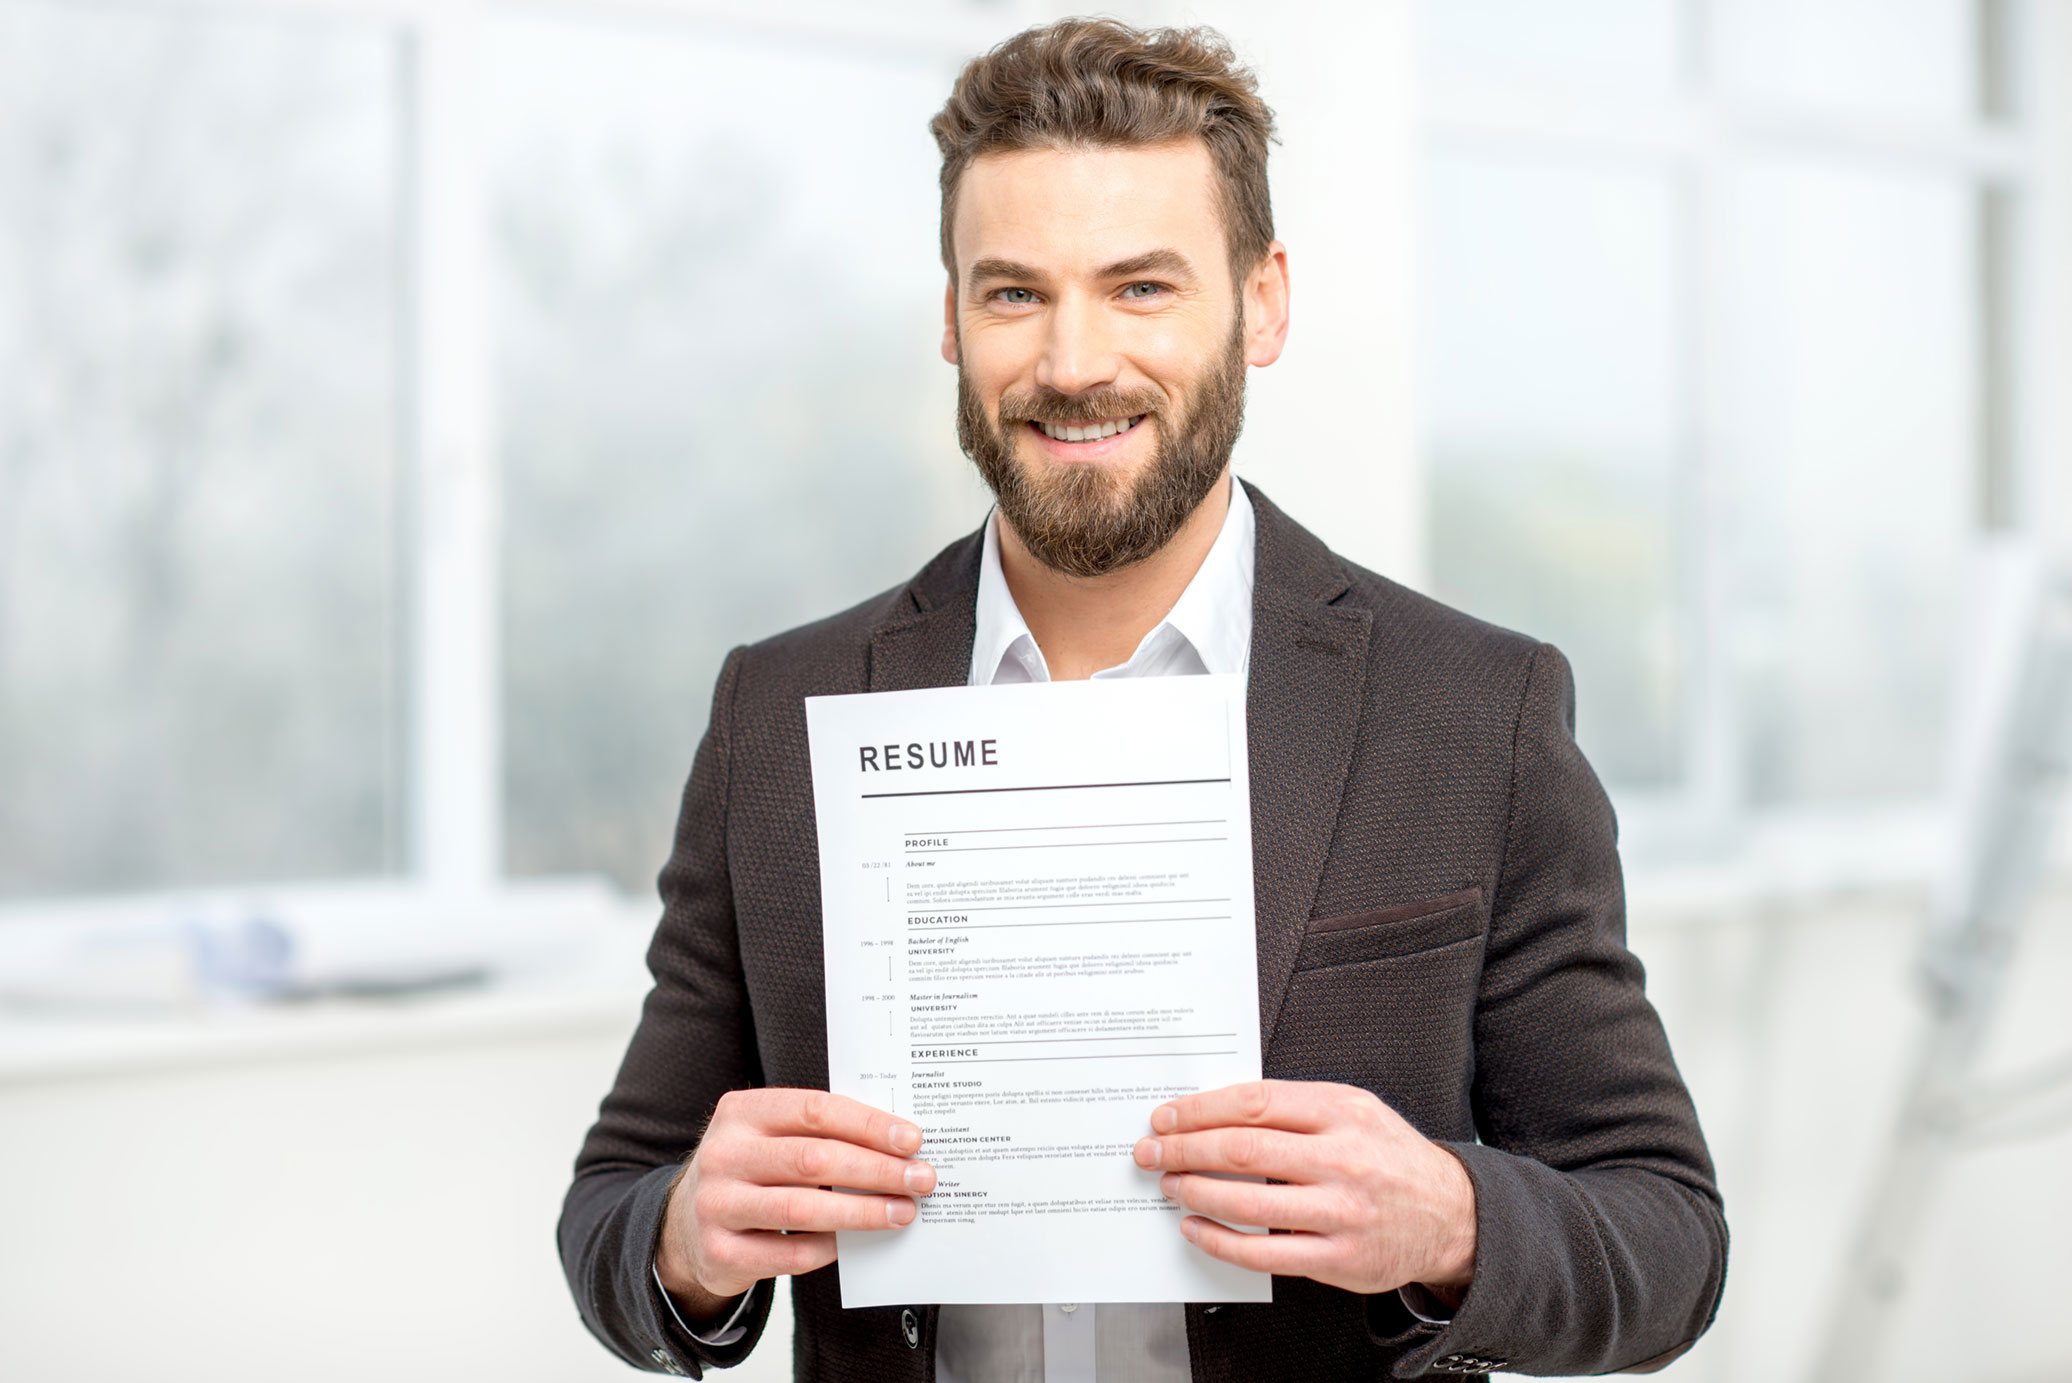 5 accounting resume tips including the follow up robert half